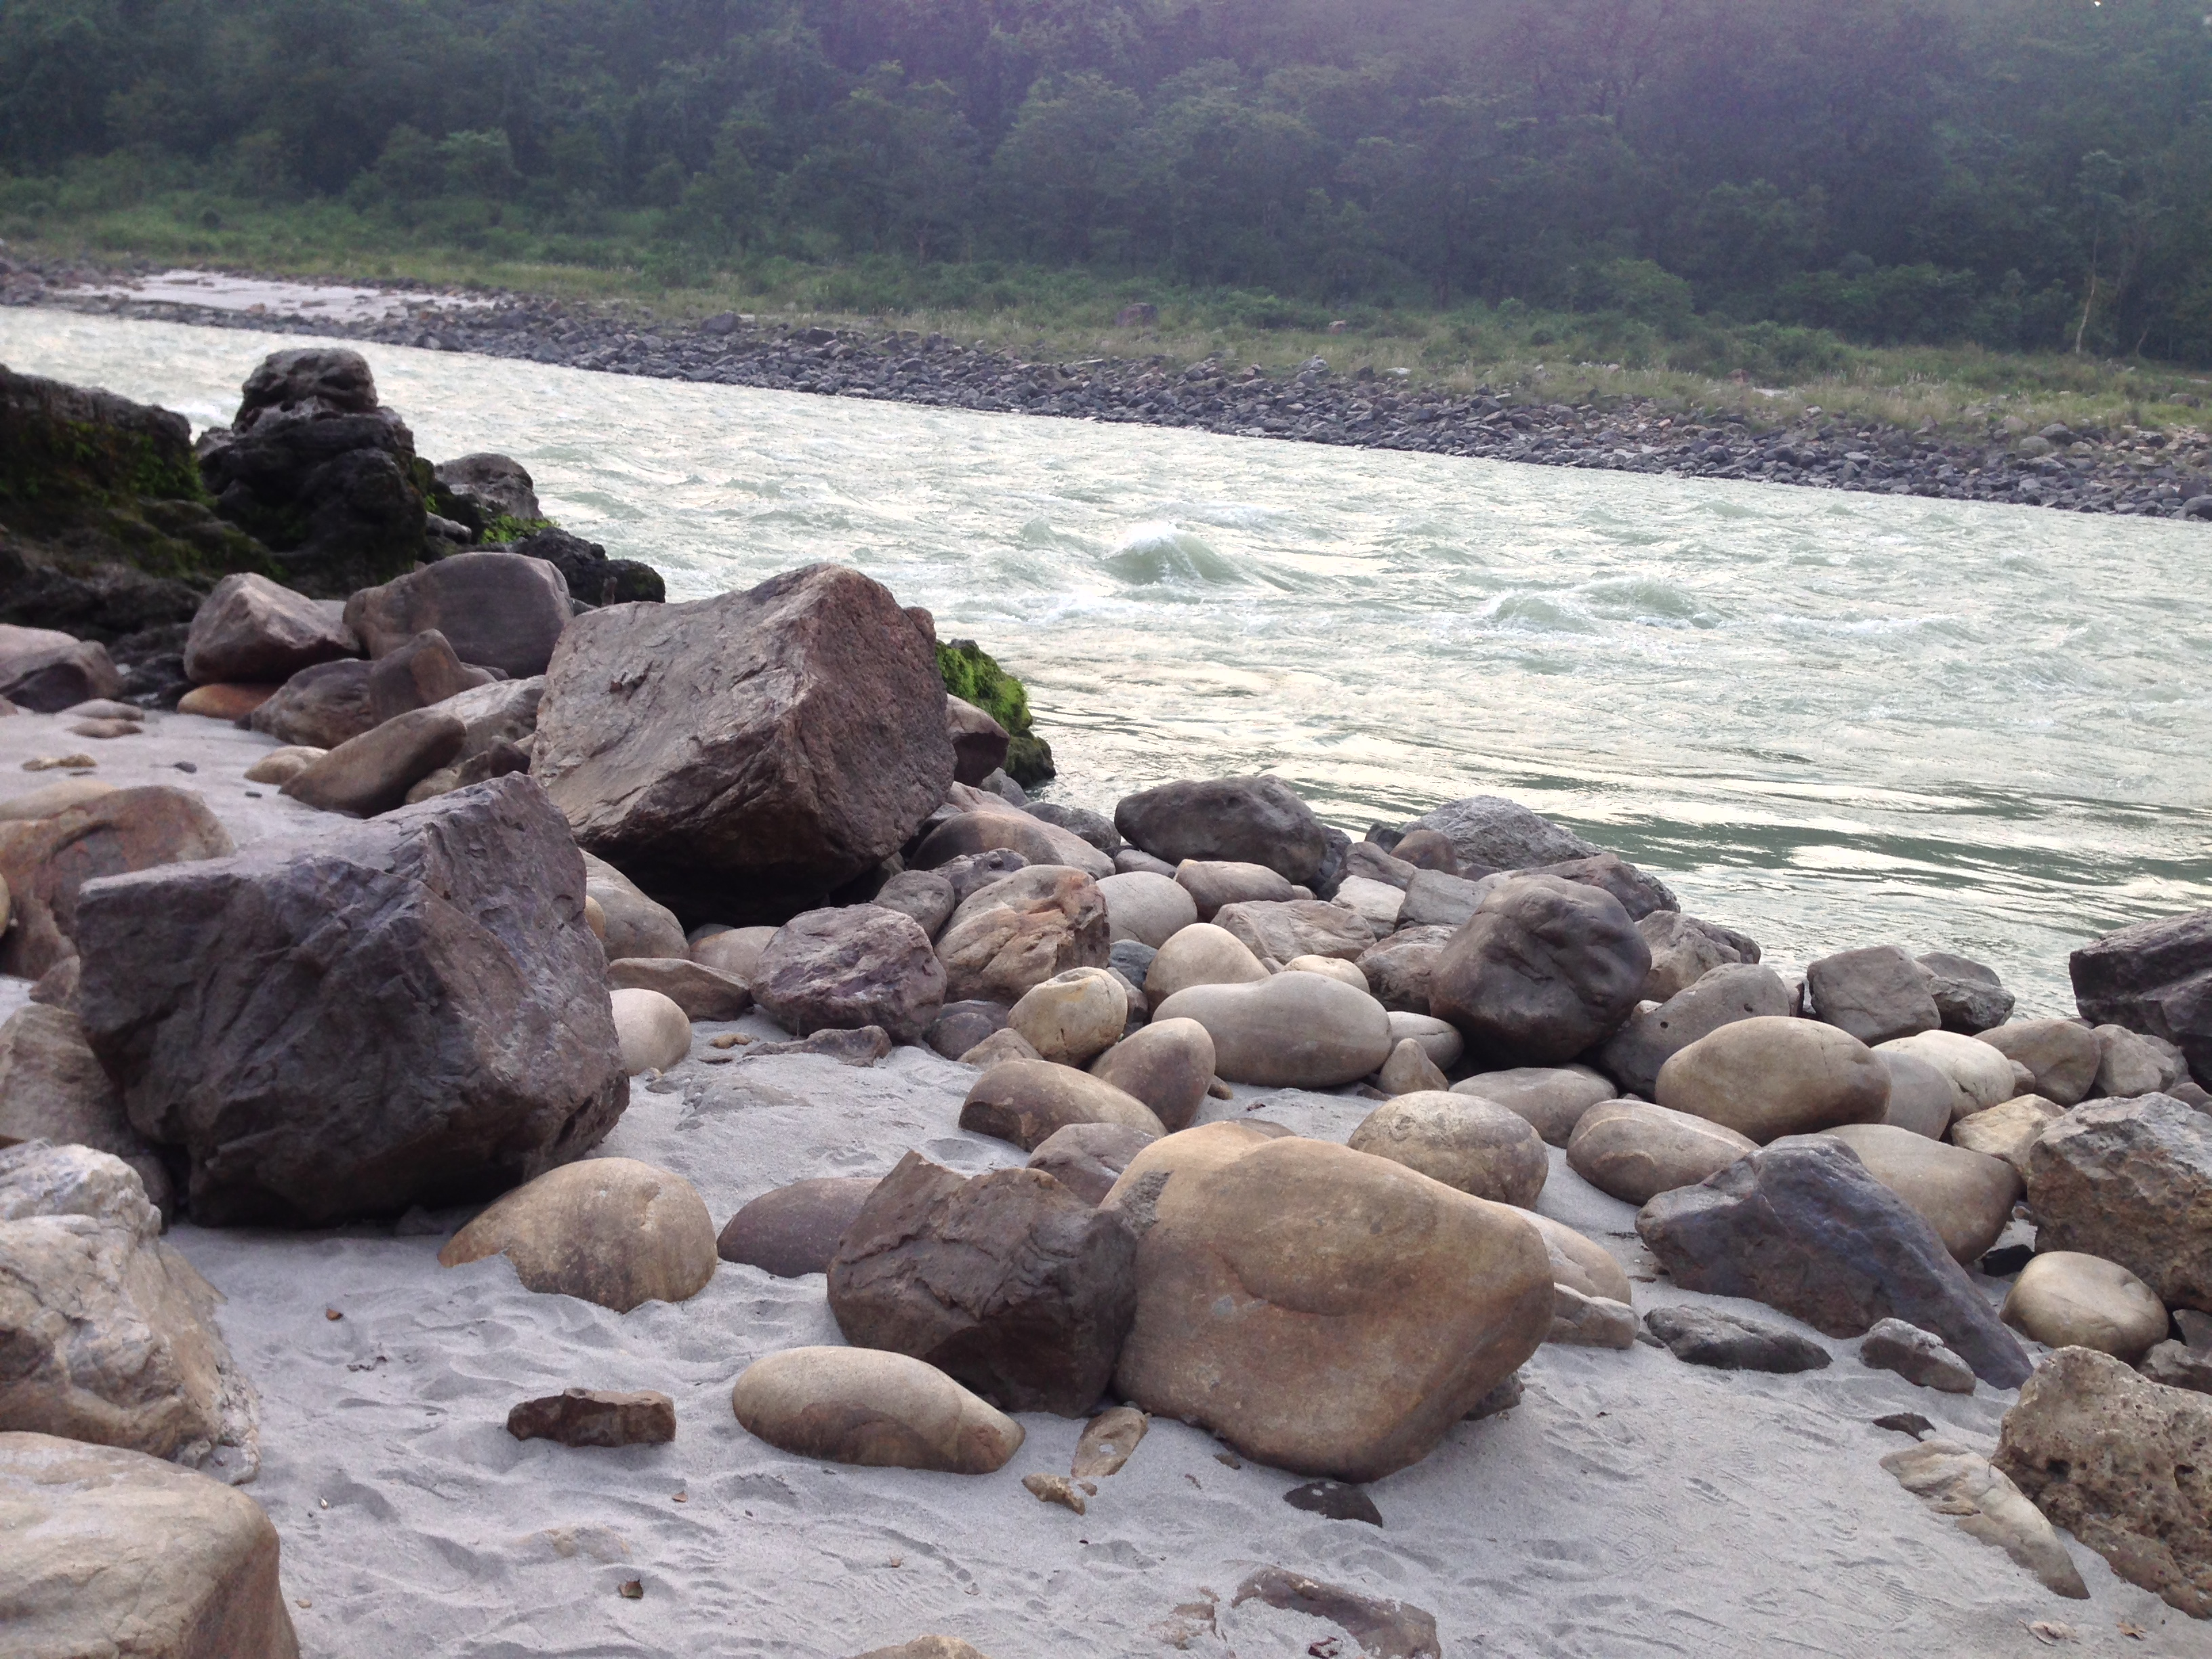 A raging river, ideal for rafting with rocks of different shapes. Both the near and far shore are visible. The river is in the background. The rocks on the near shore are one of the most prominant feature's of this image.